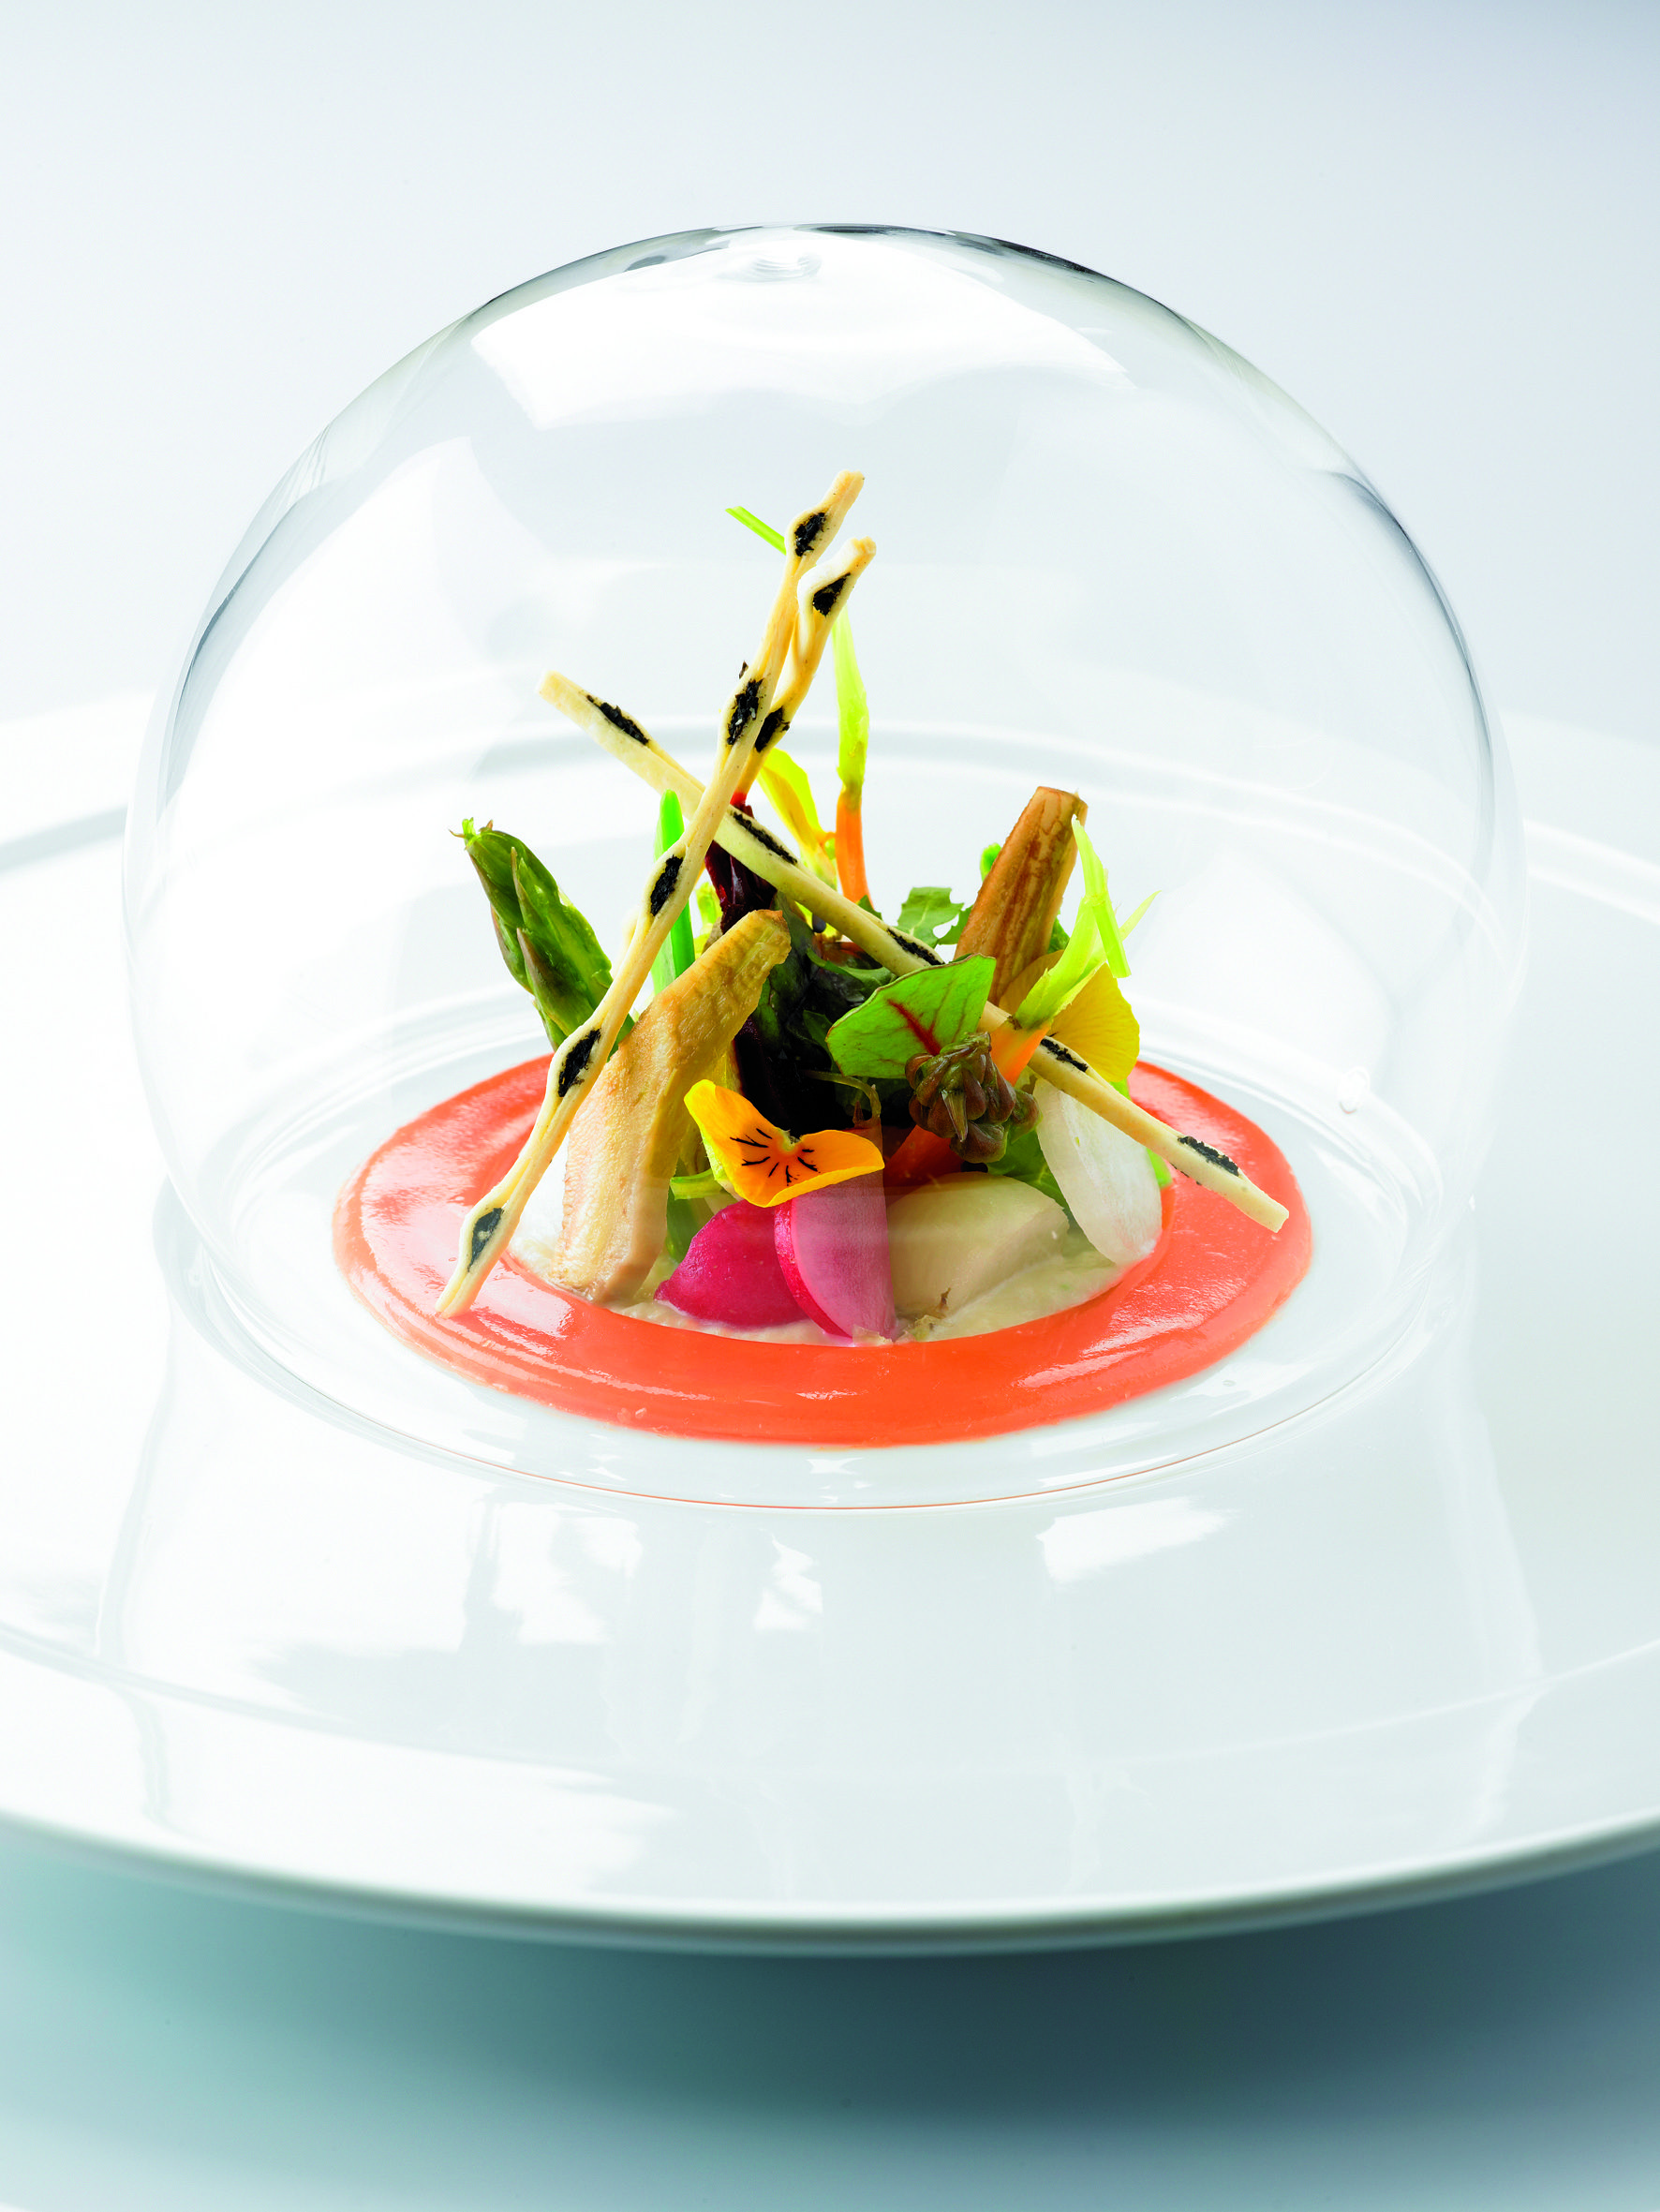 Le Pre Catelan Gastronomie Luxury Food Food And Drink Food Styling